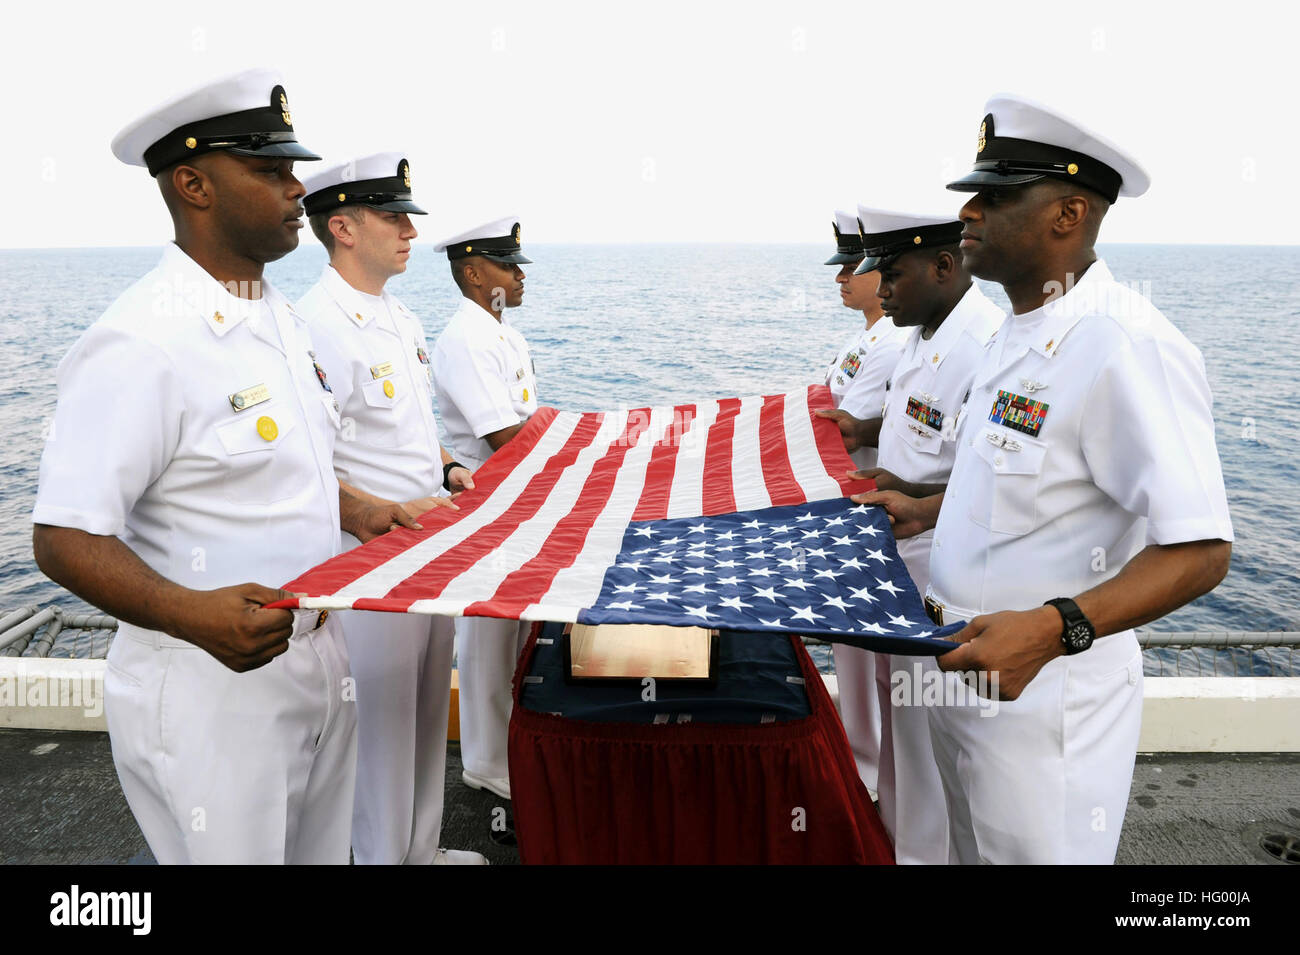 110818-N-AU622-013 ATLANTIC OCEAN (Aug. 18, 2011) Chief petty officers prepare a flag for a burial at sea aboard - Stock Image